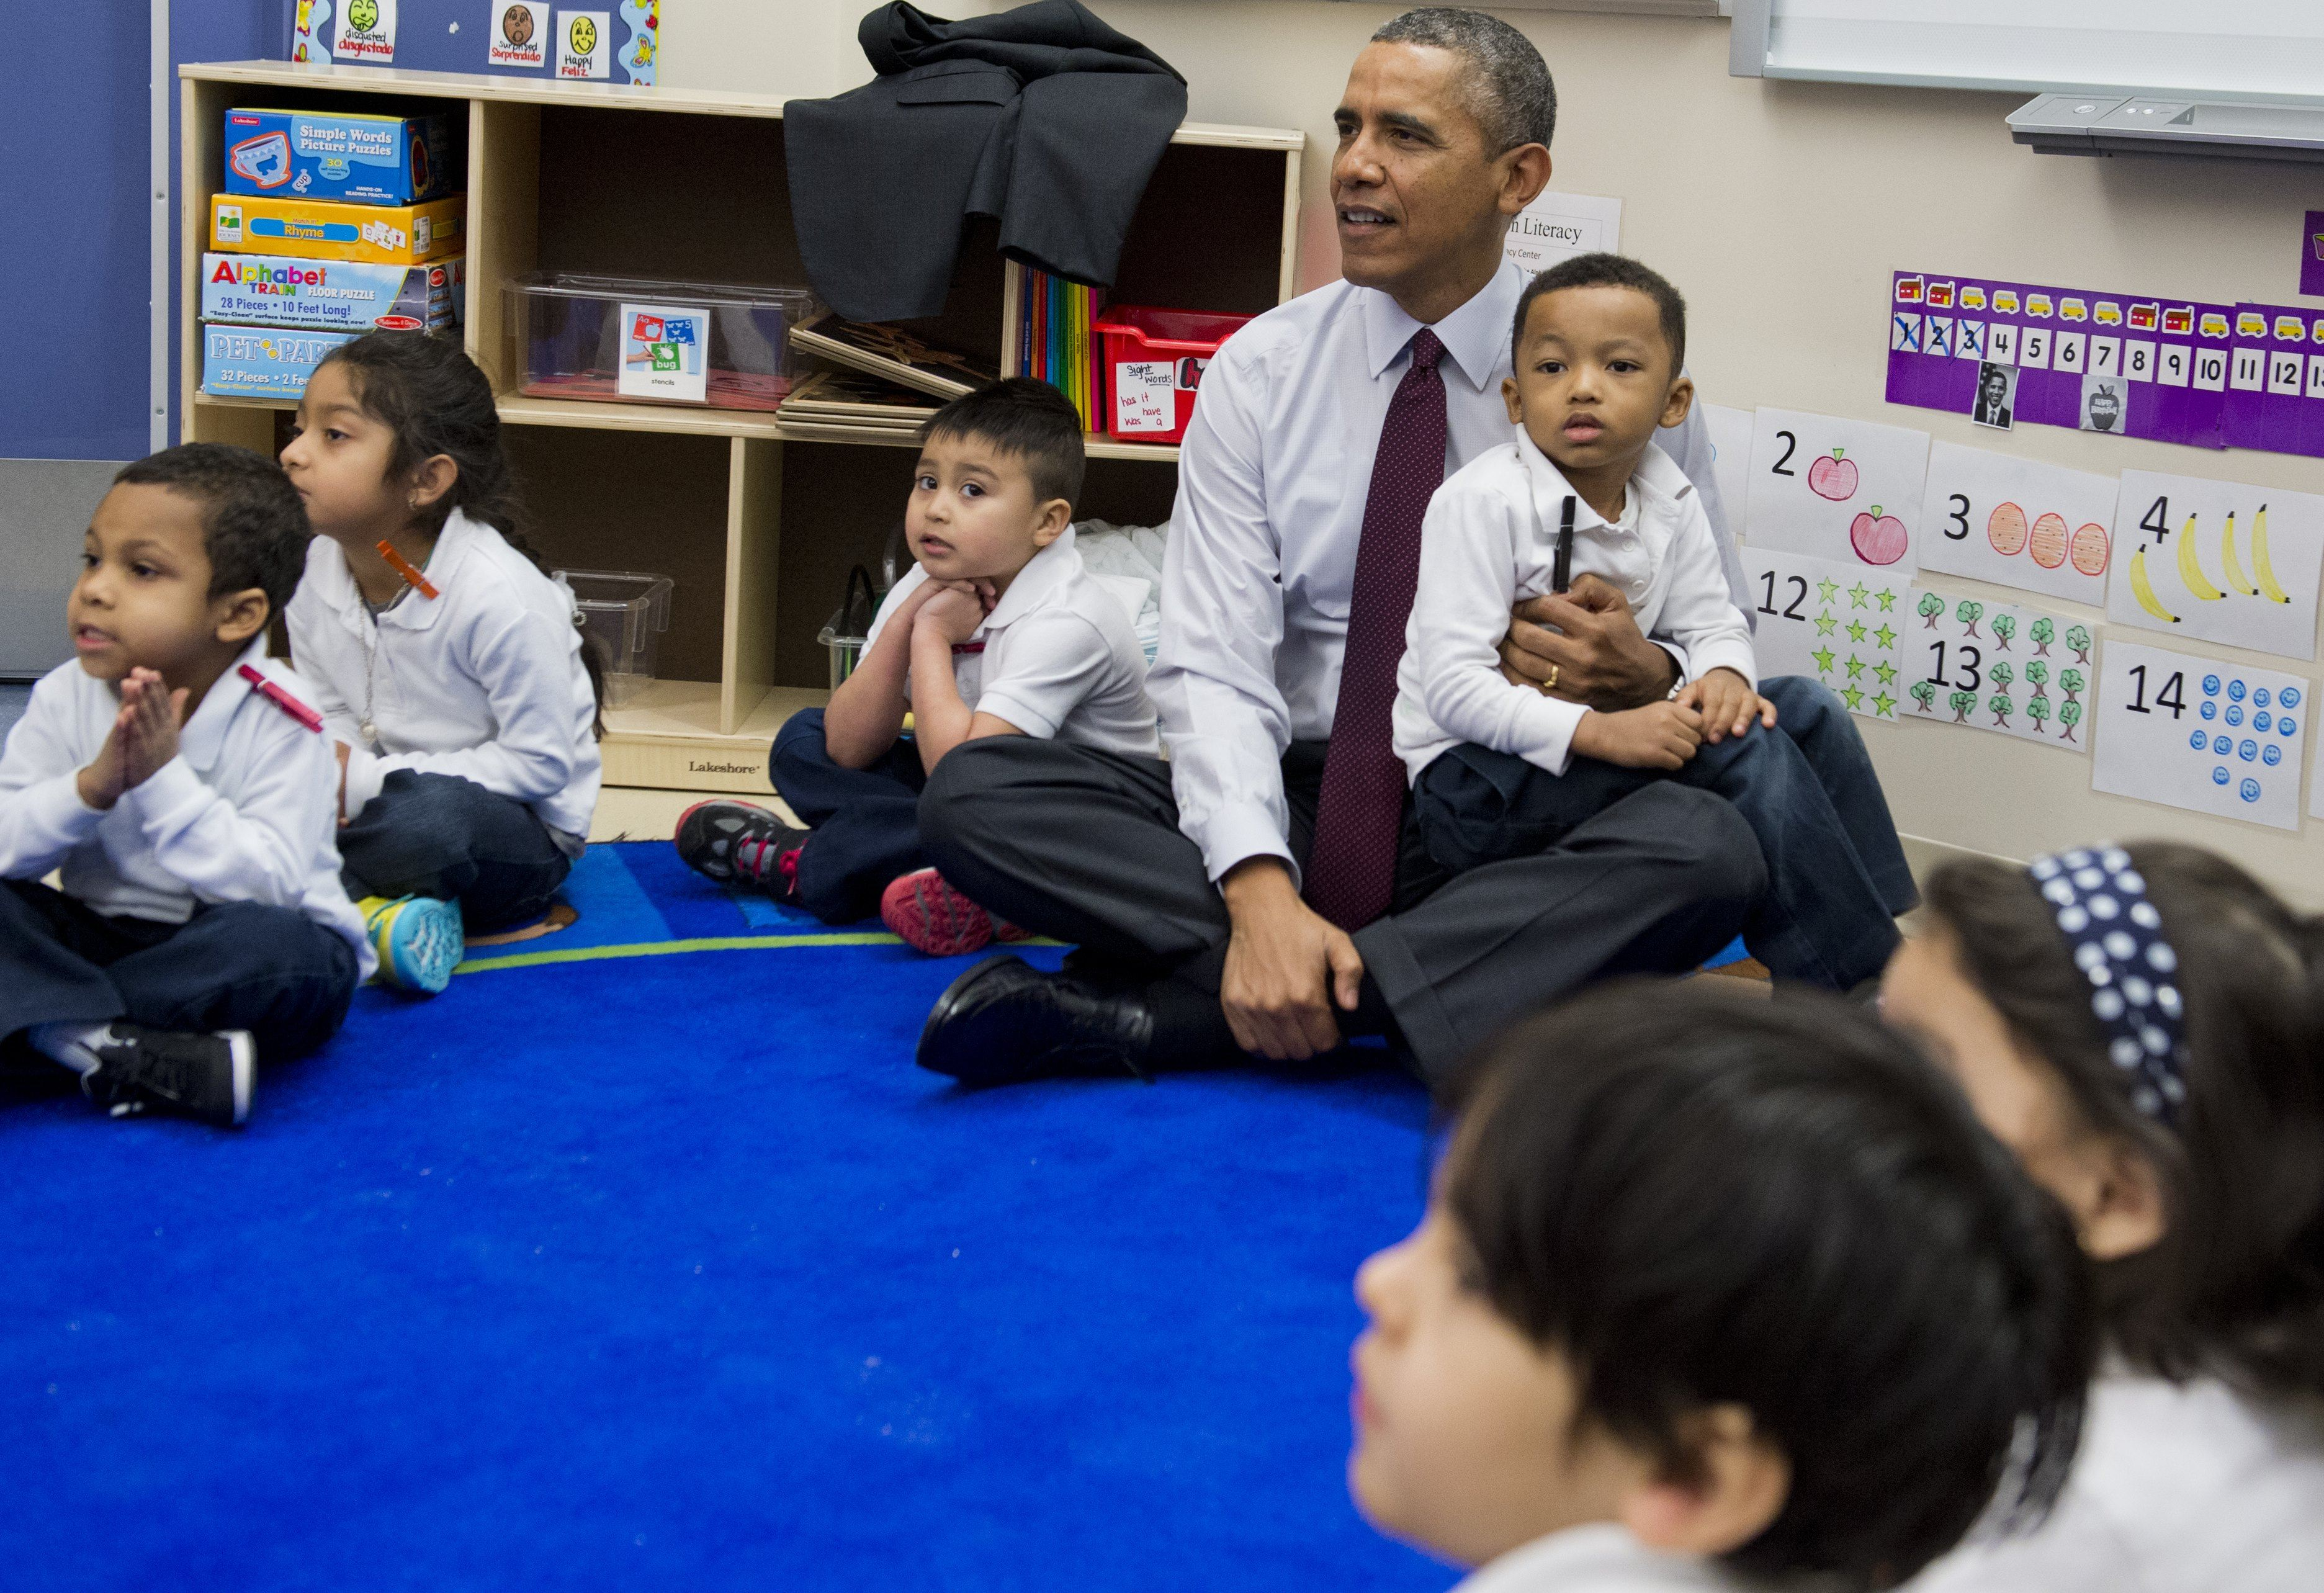 Watch How Barack Obama and Donald Trump Treat Kids: We ...